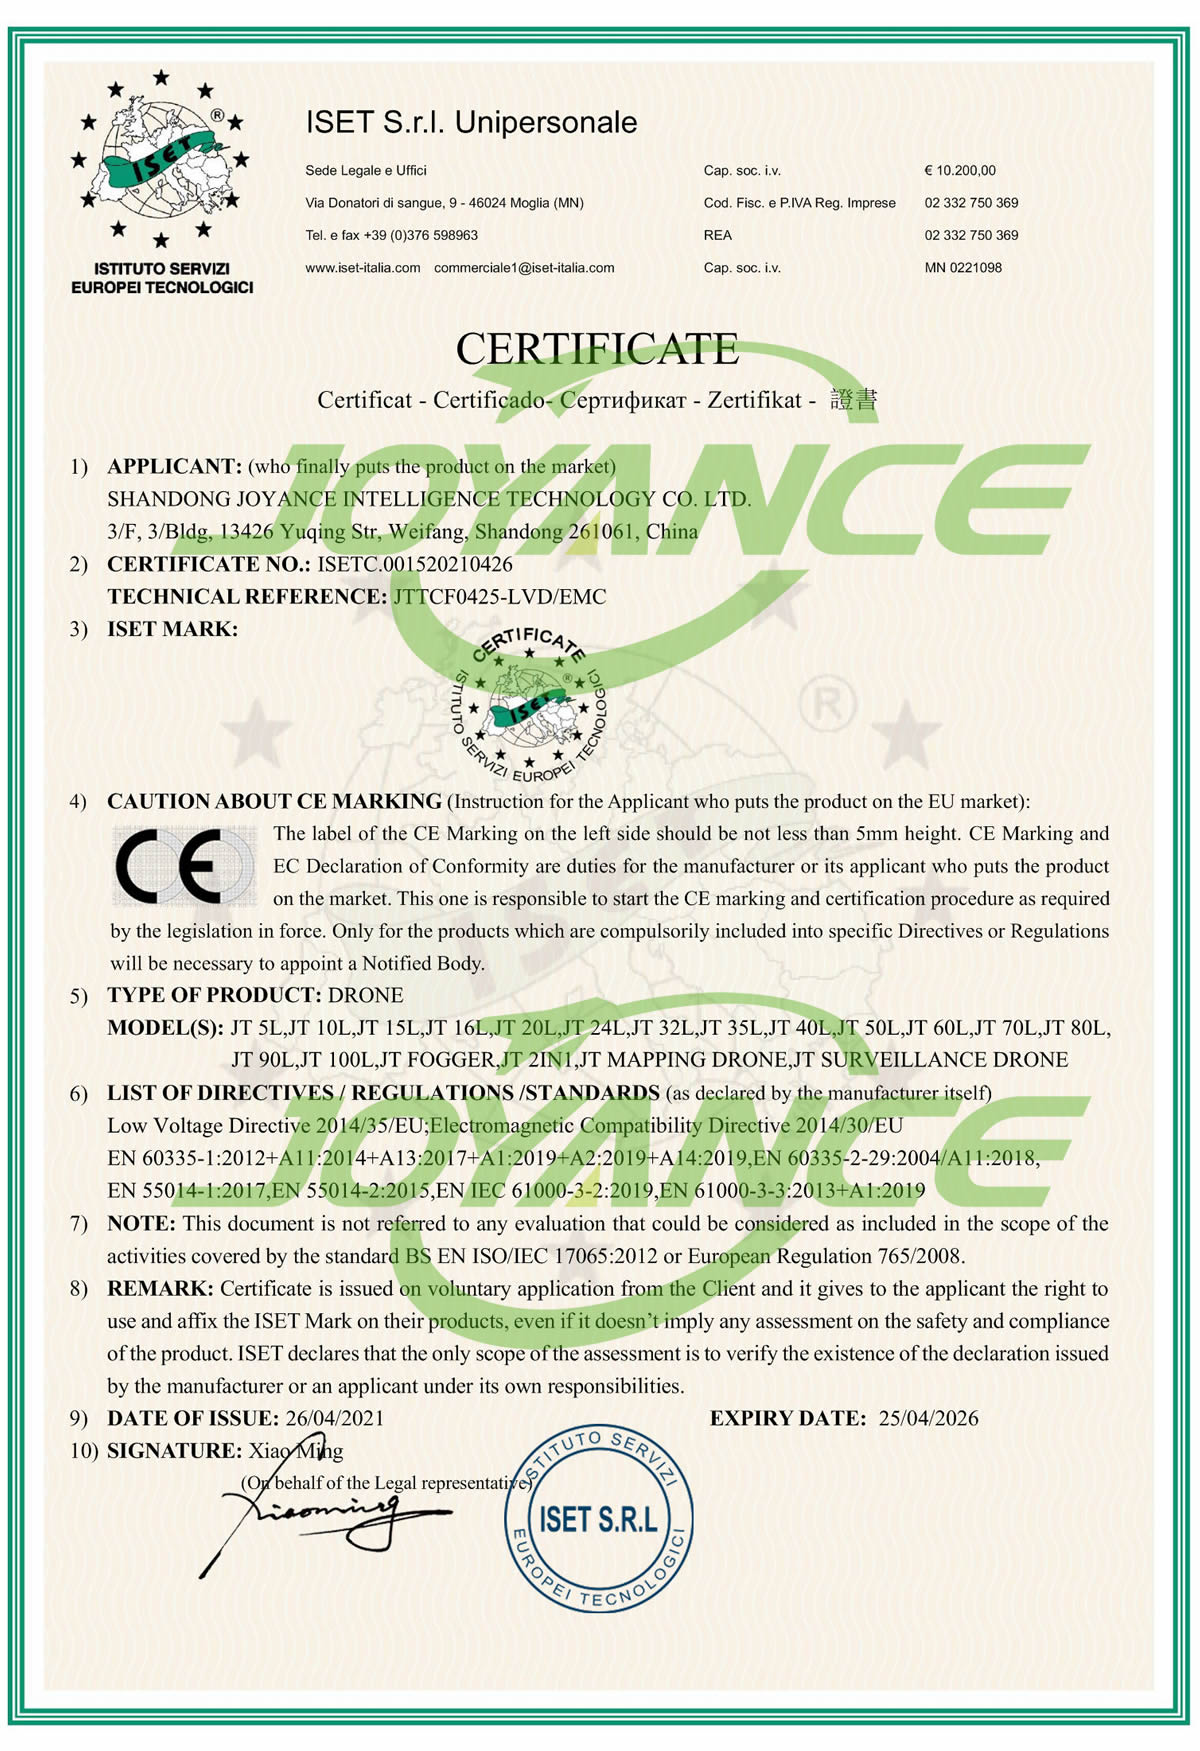 Joyance Drones Pass CE Test, And Get CE Certificate